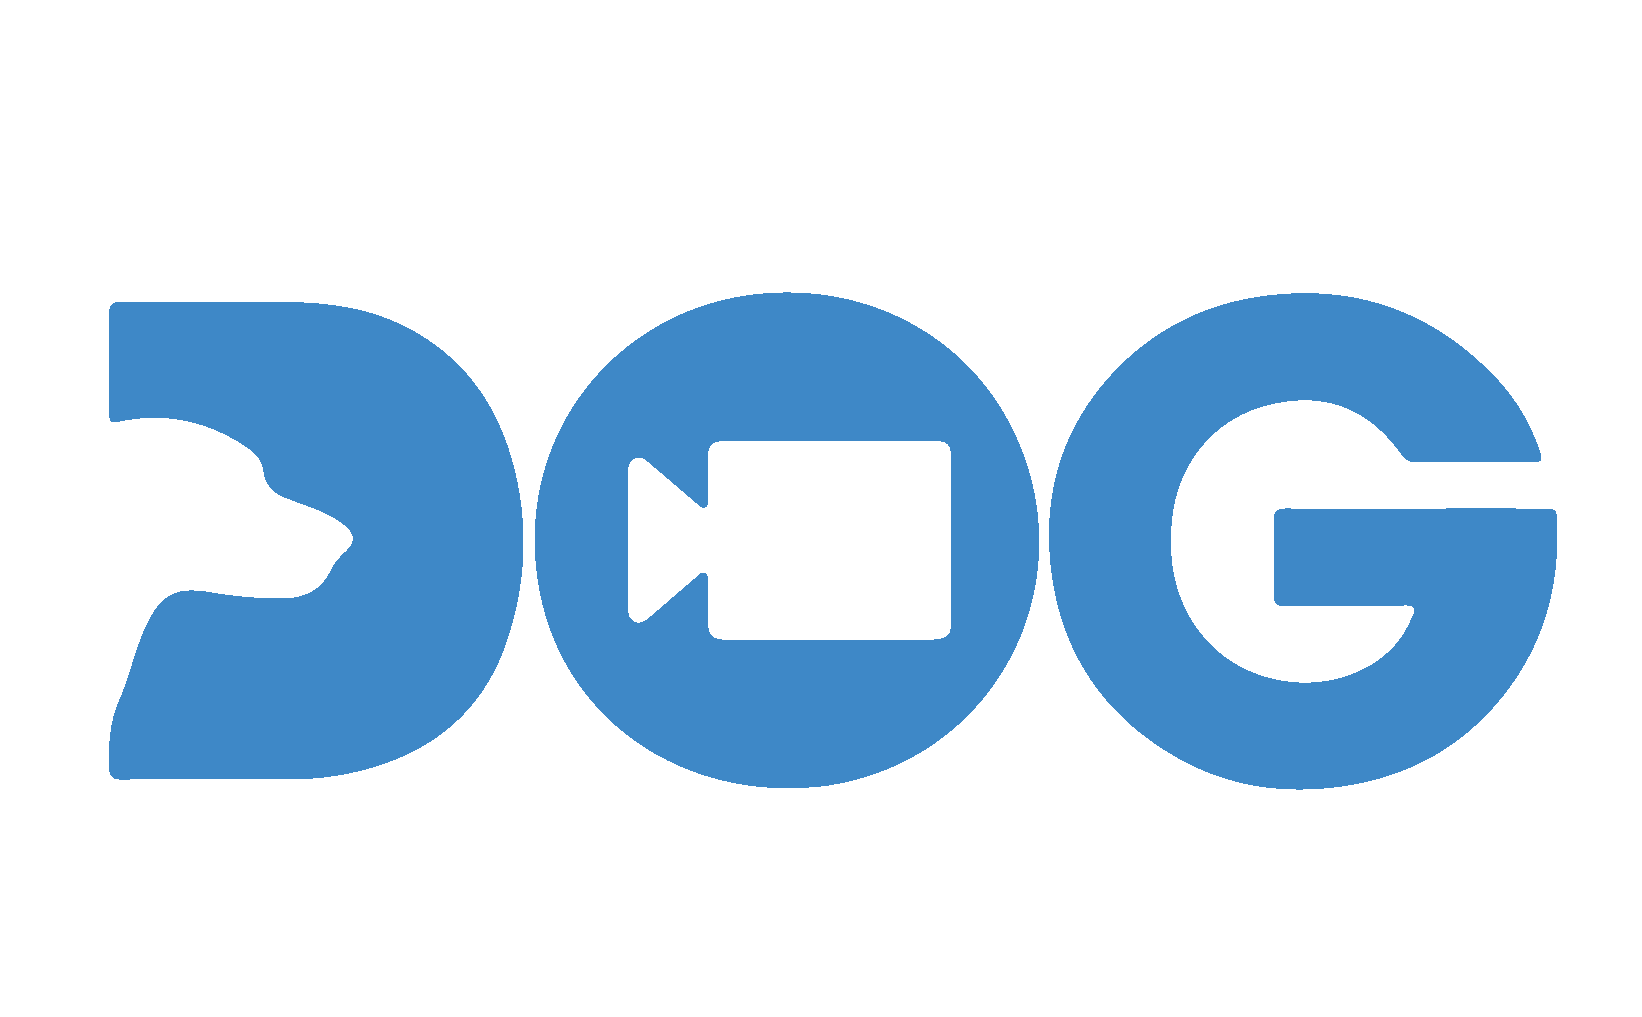 Save the Dog Video Productions